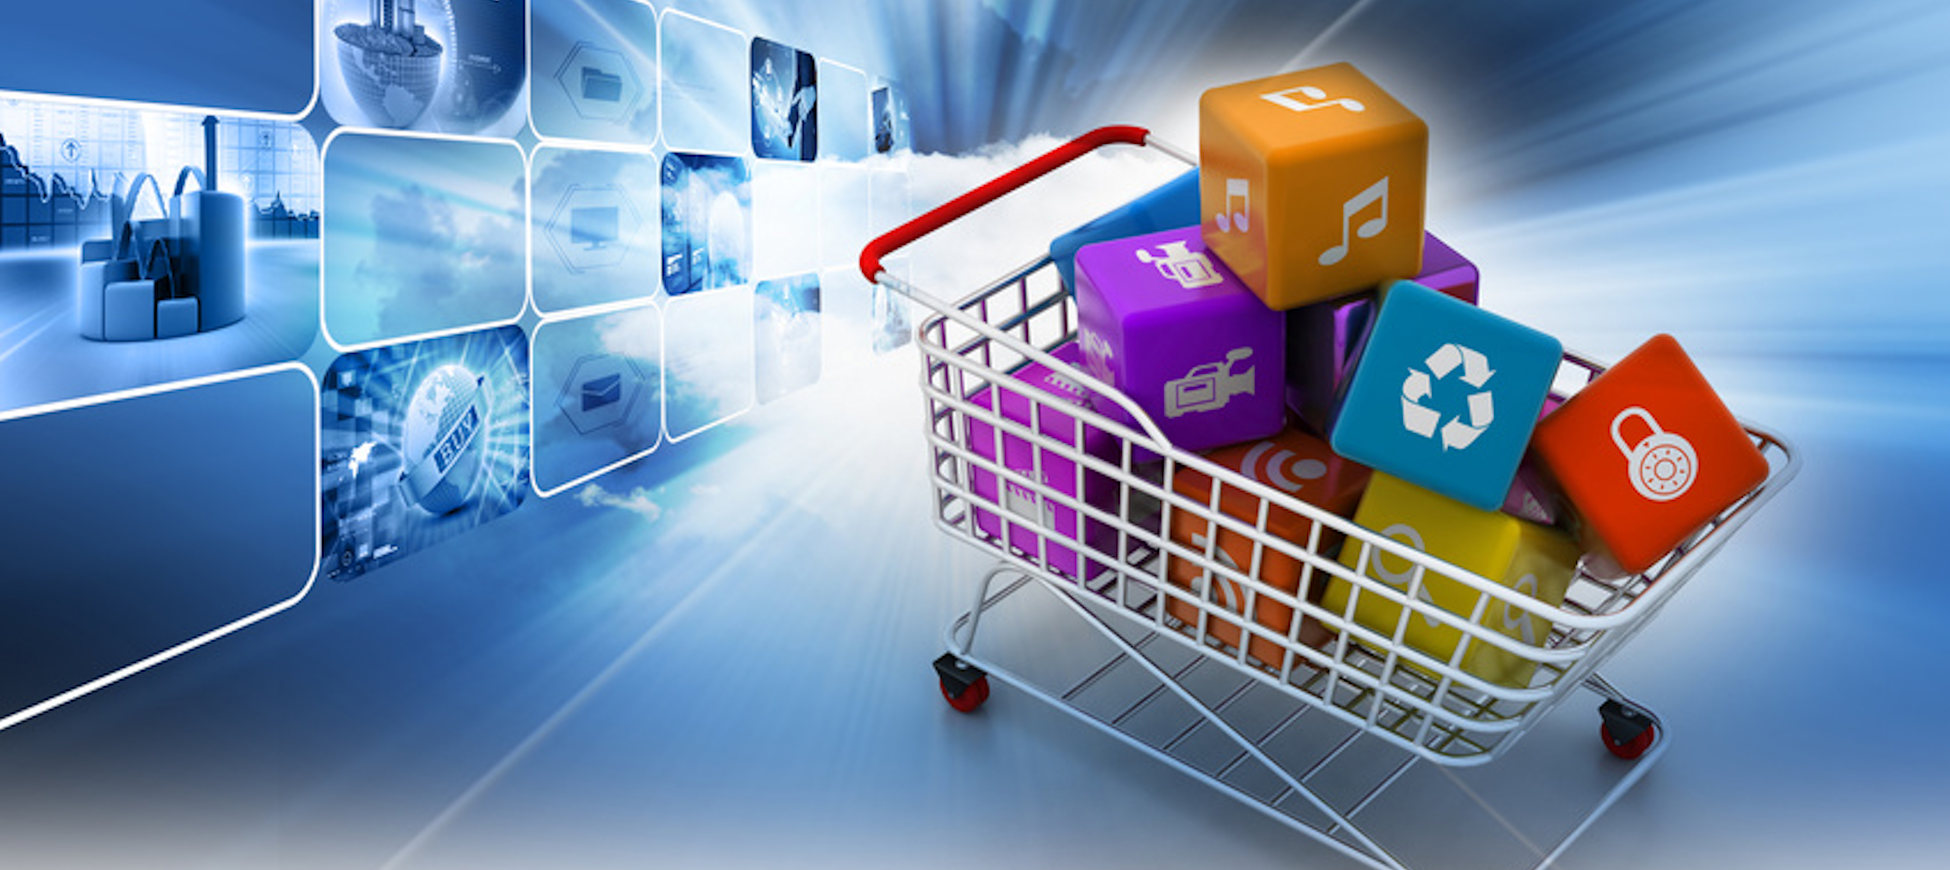 InnoTech can design a secure online store to sell your products and services.